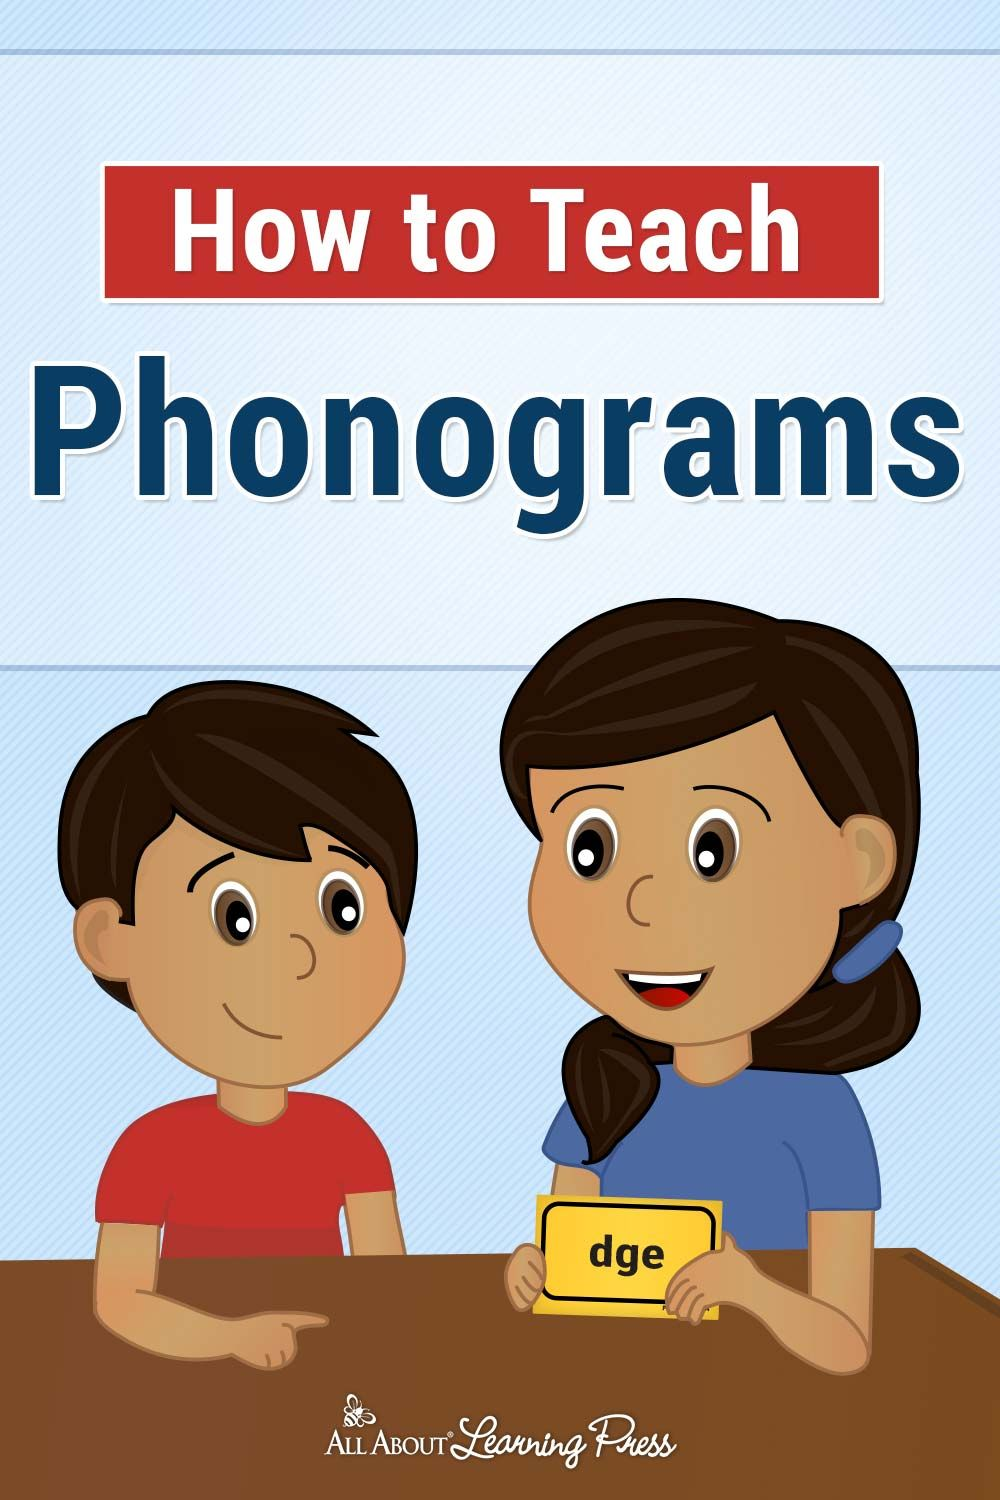 How To Teach Phonograms 3 Free Printable Games Phonograms Kindergarten Worksheets Homeschool Phonics How to teach child to read and spell